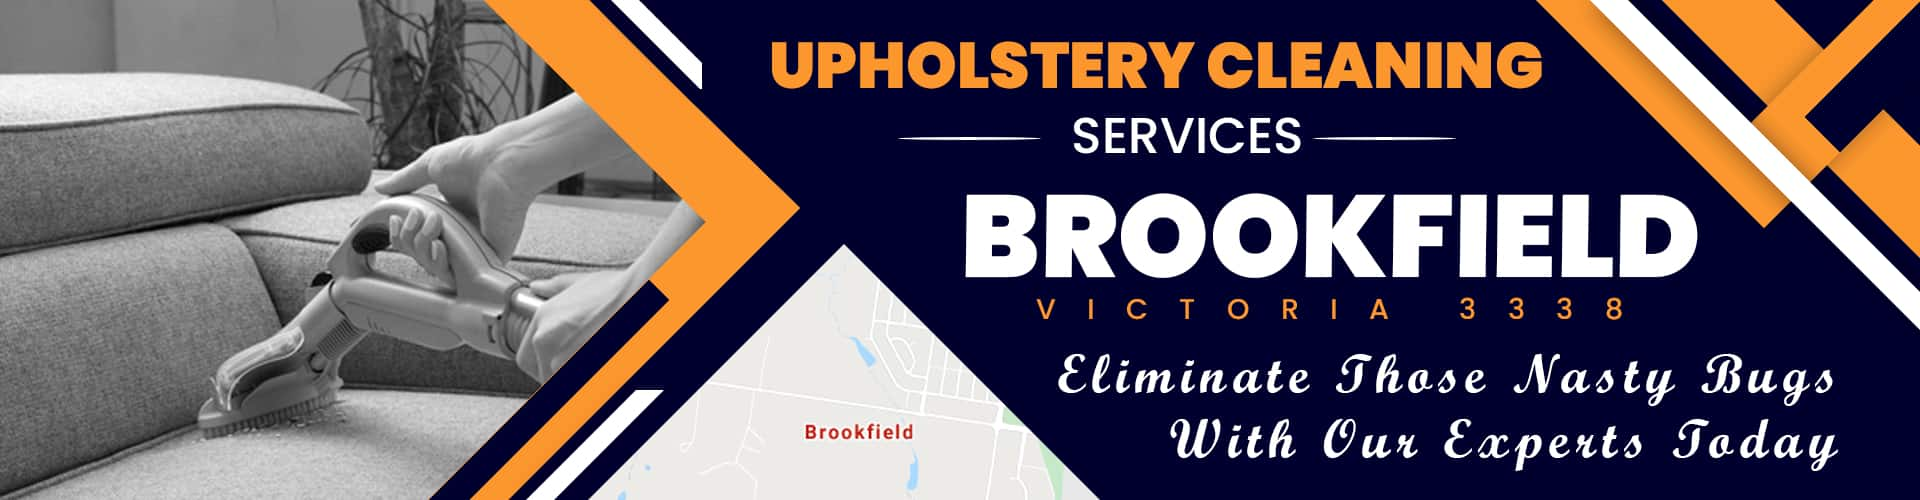 Upholstery Cleaning Brookfield